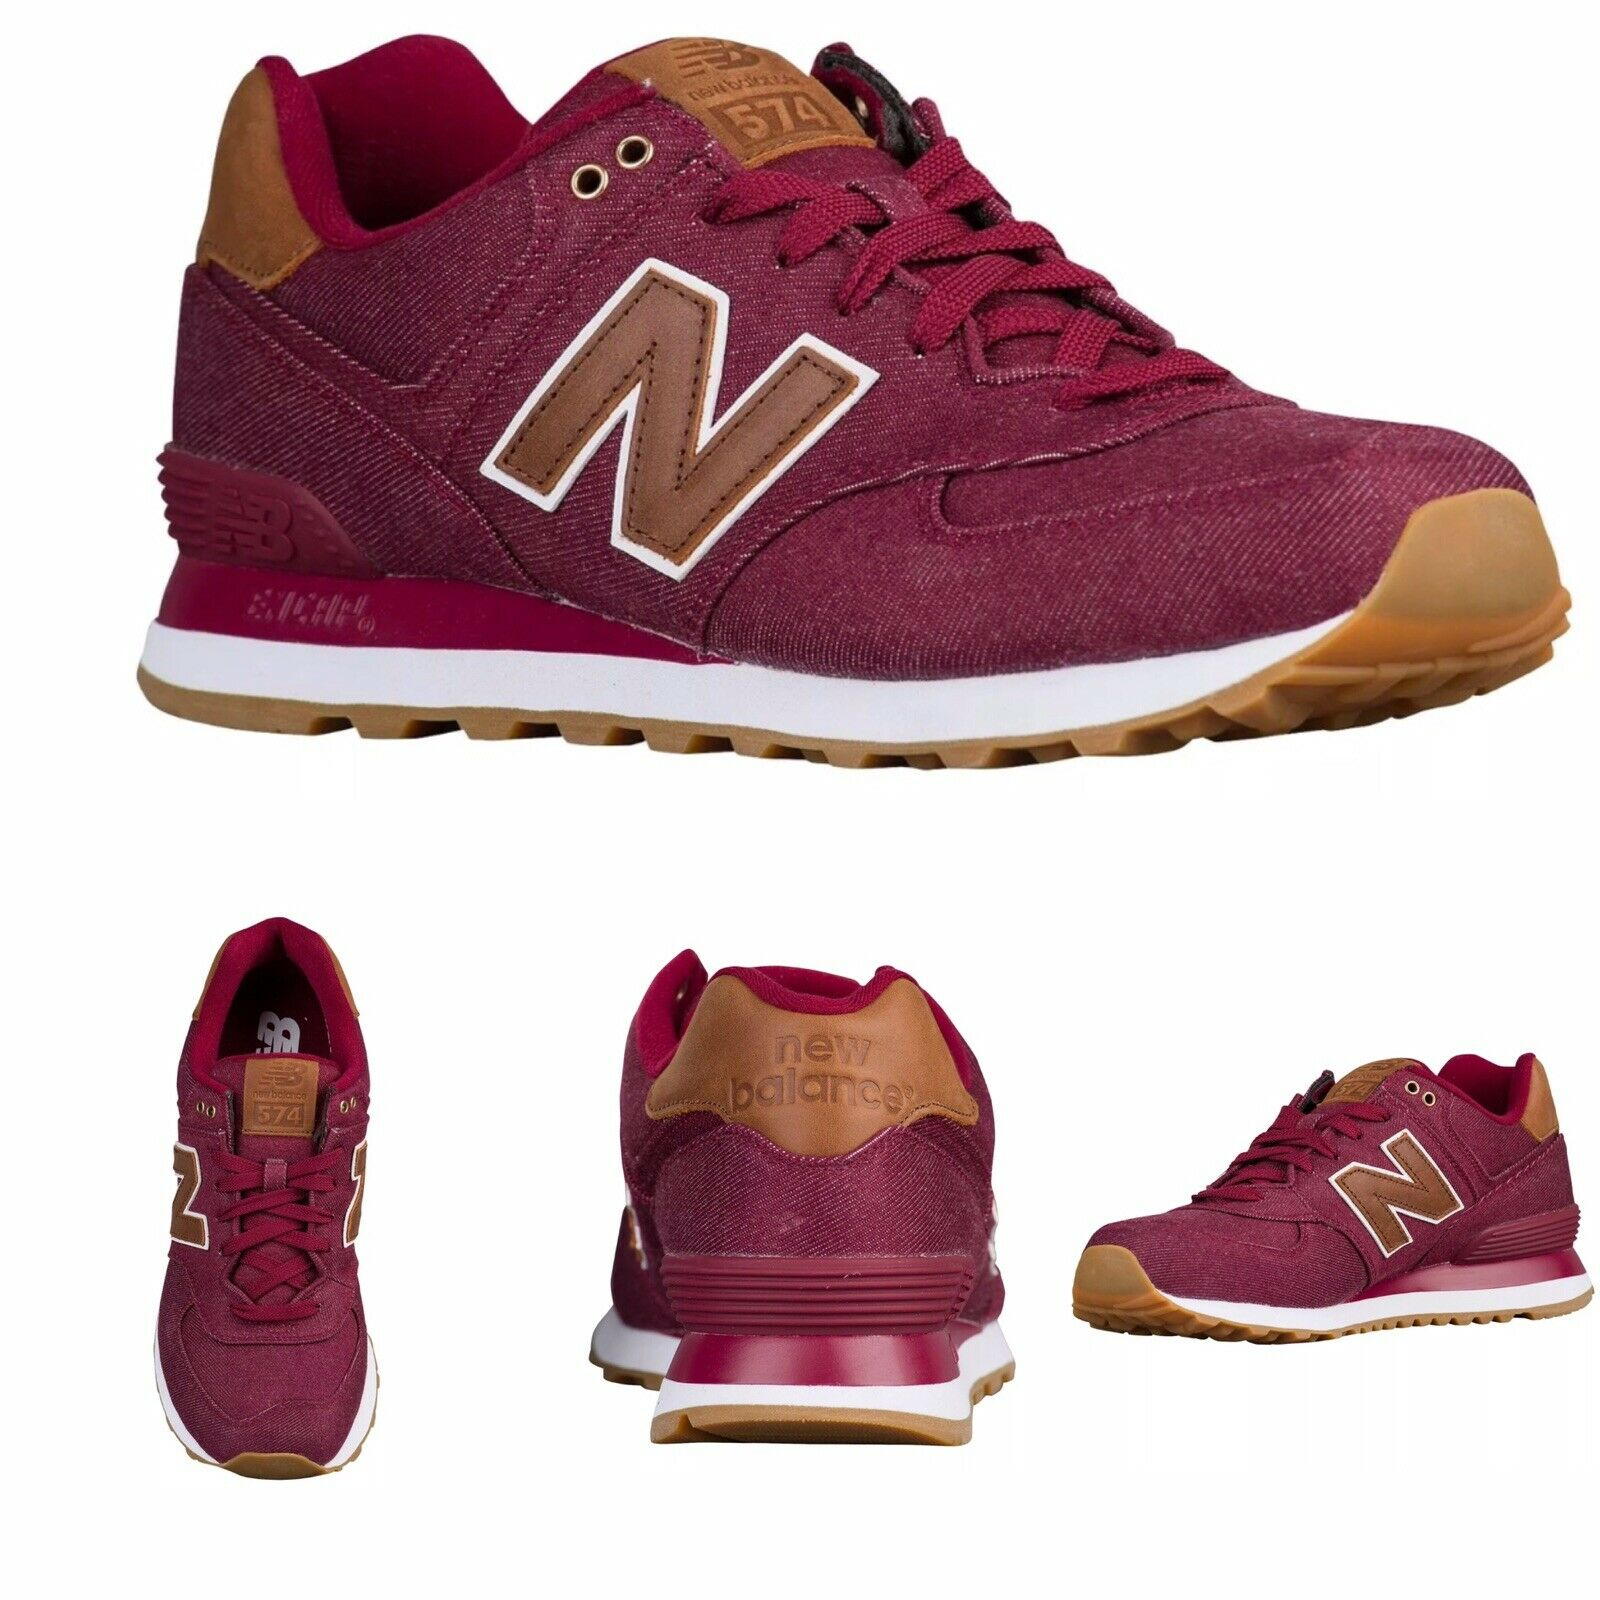 Men's  New Balance ML574TXD  Beet Red Canvas  Lifestyles shoes NEW  Size us 10.5